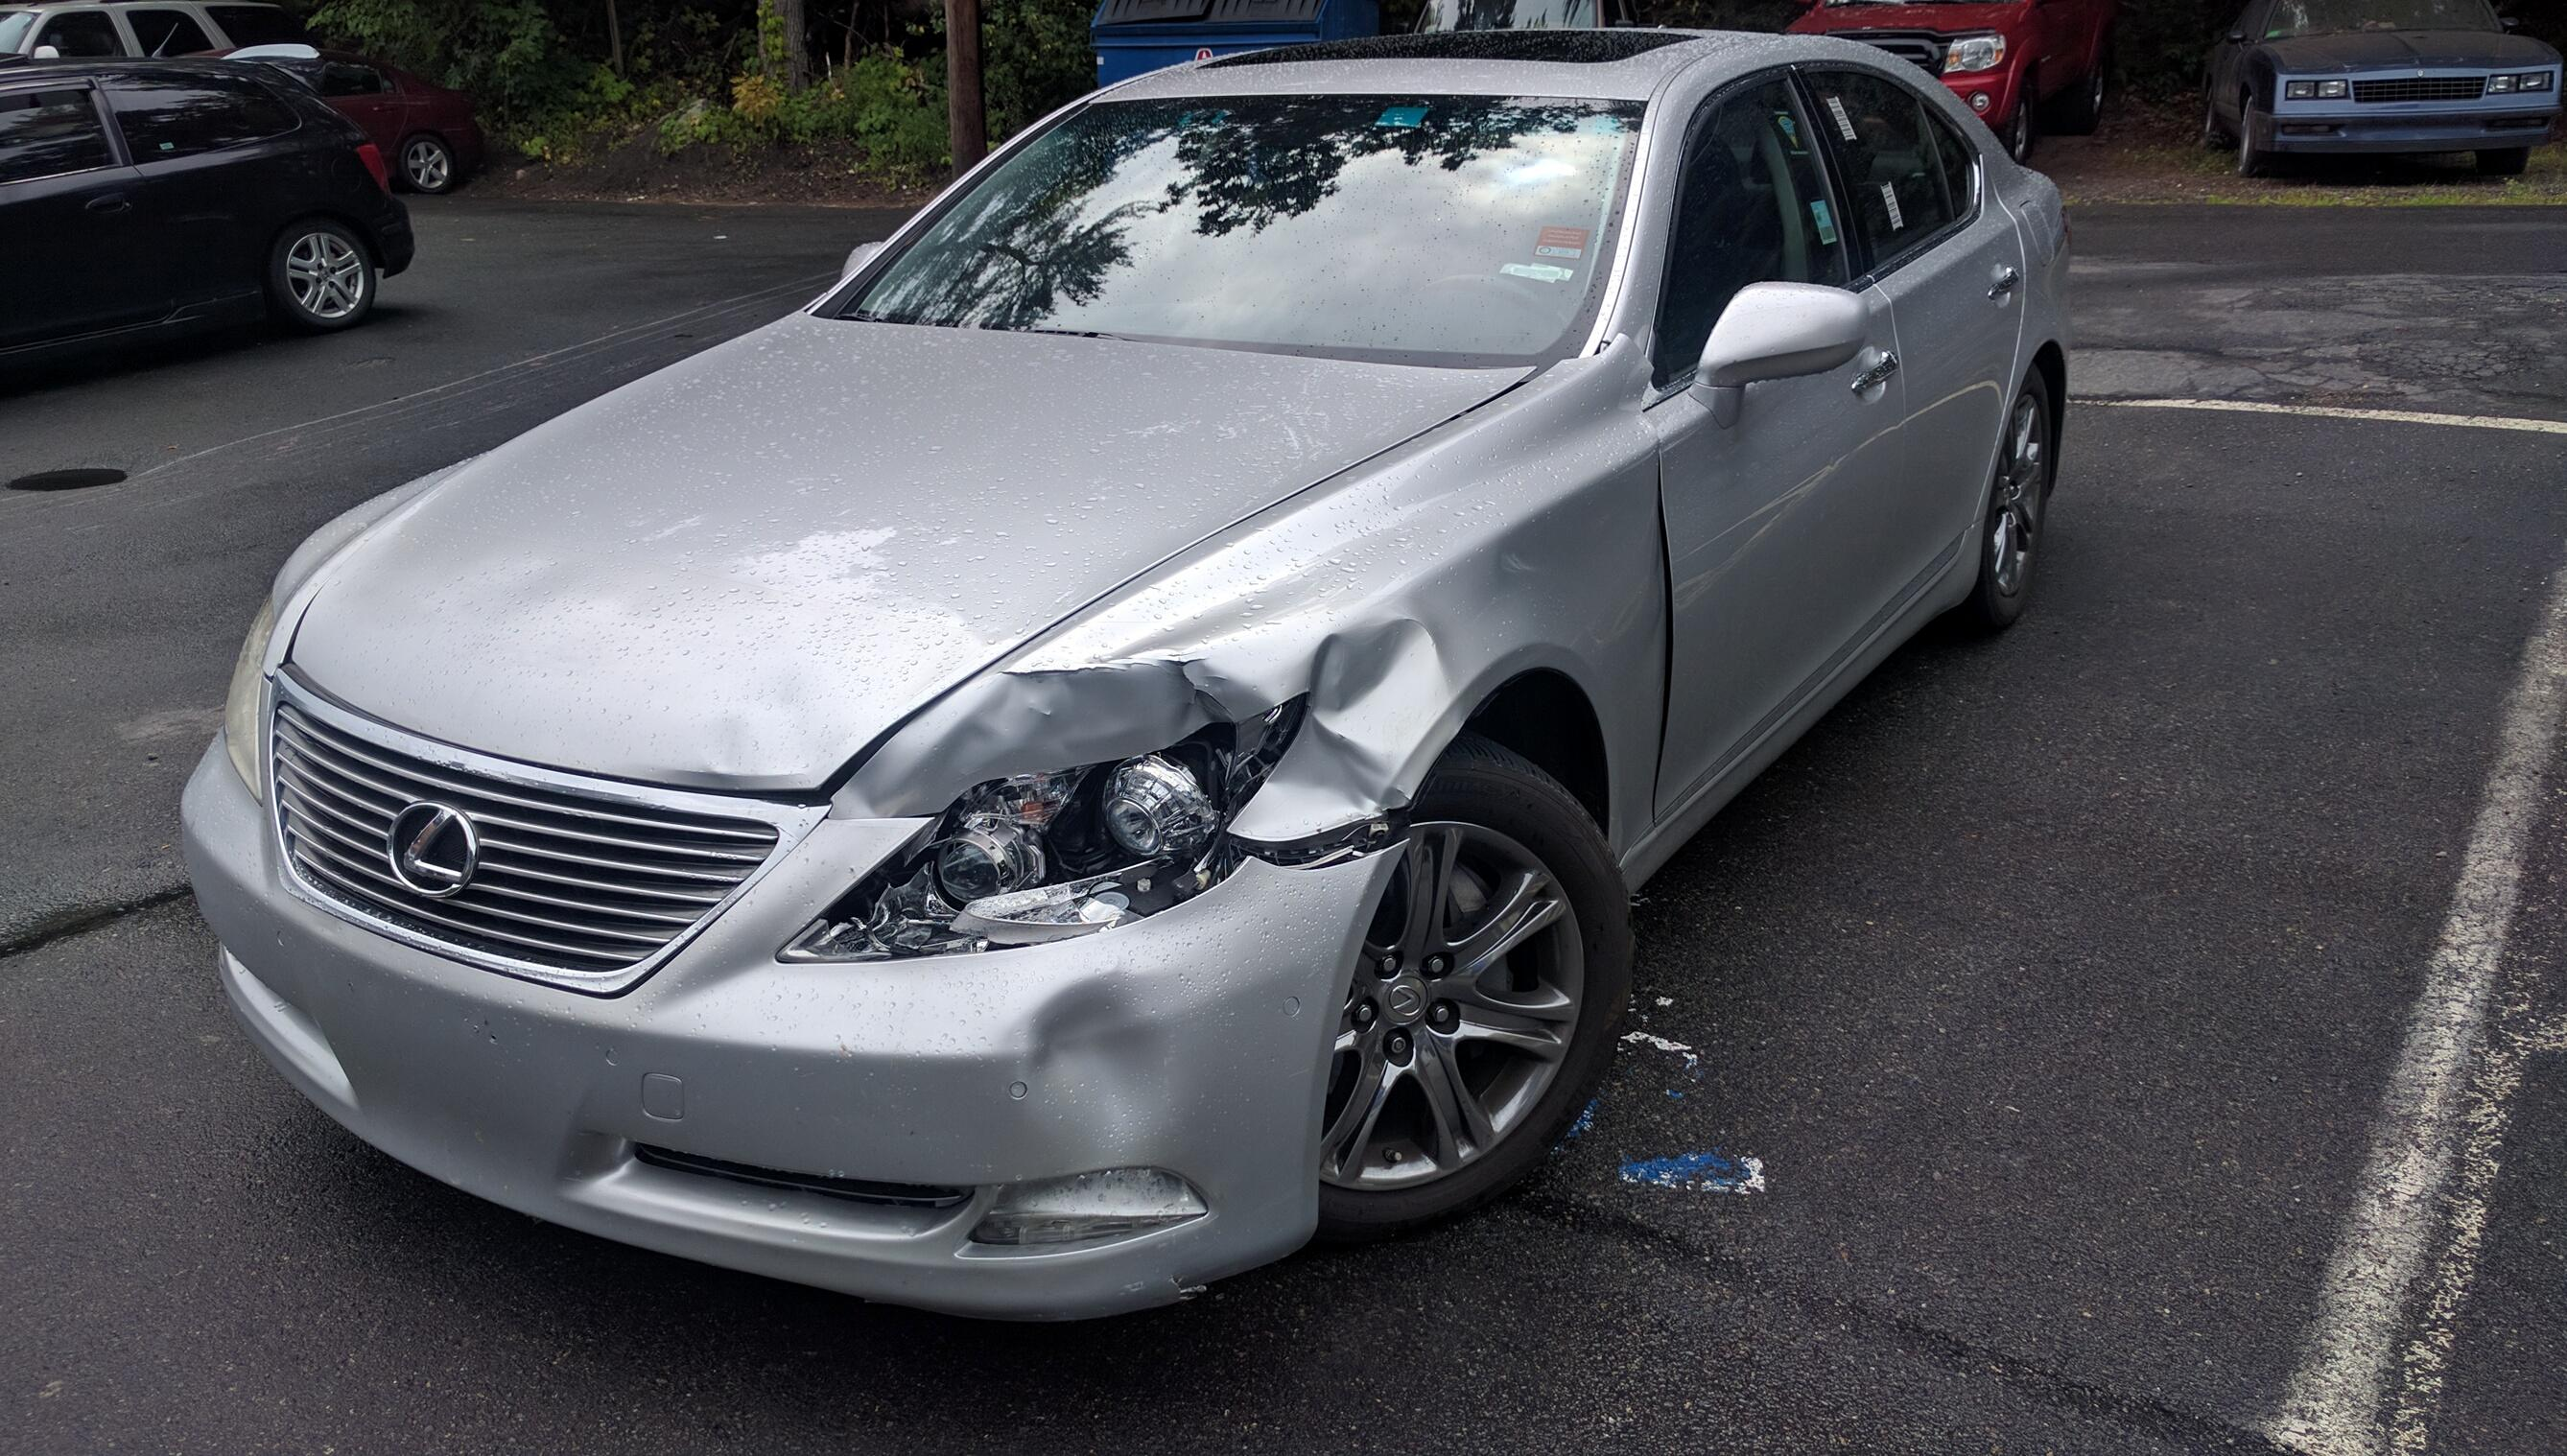 Maaco Collision Repair & Auto Painting image 1